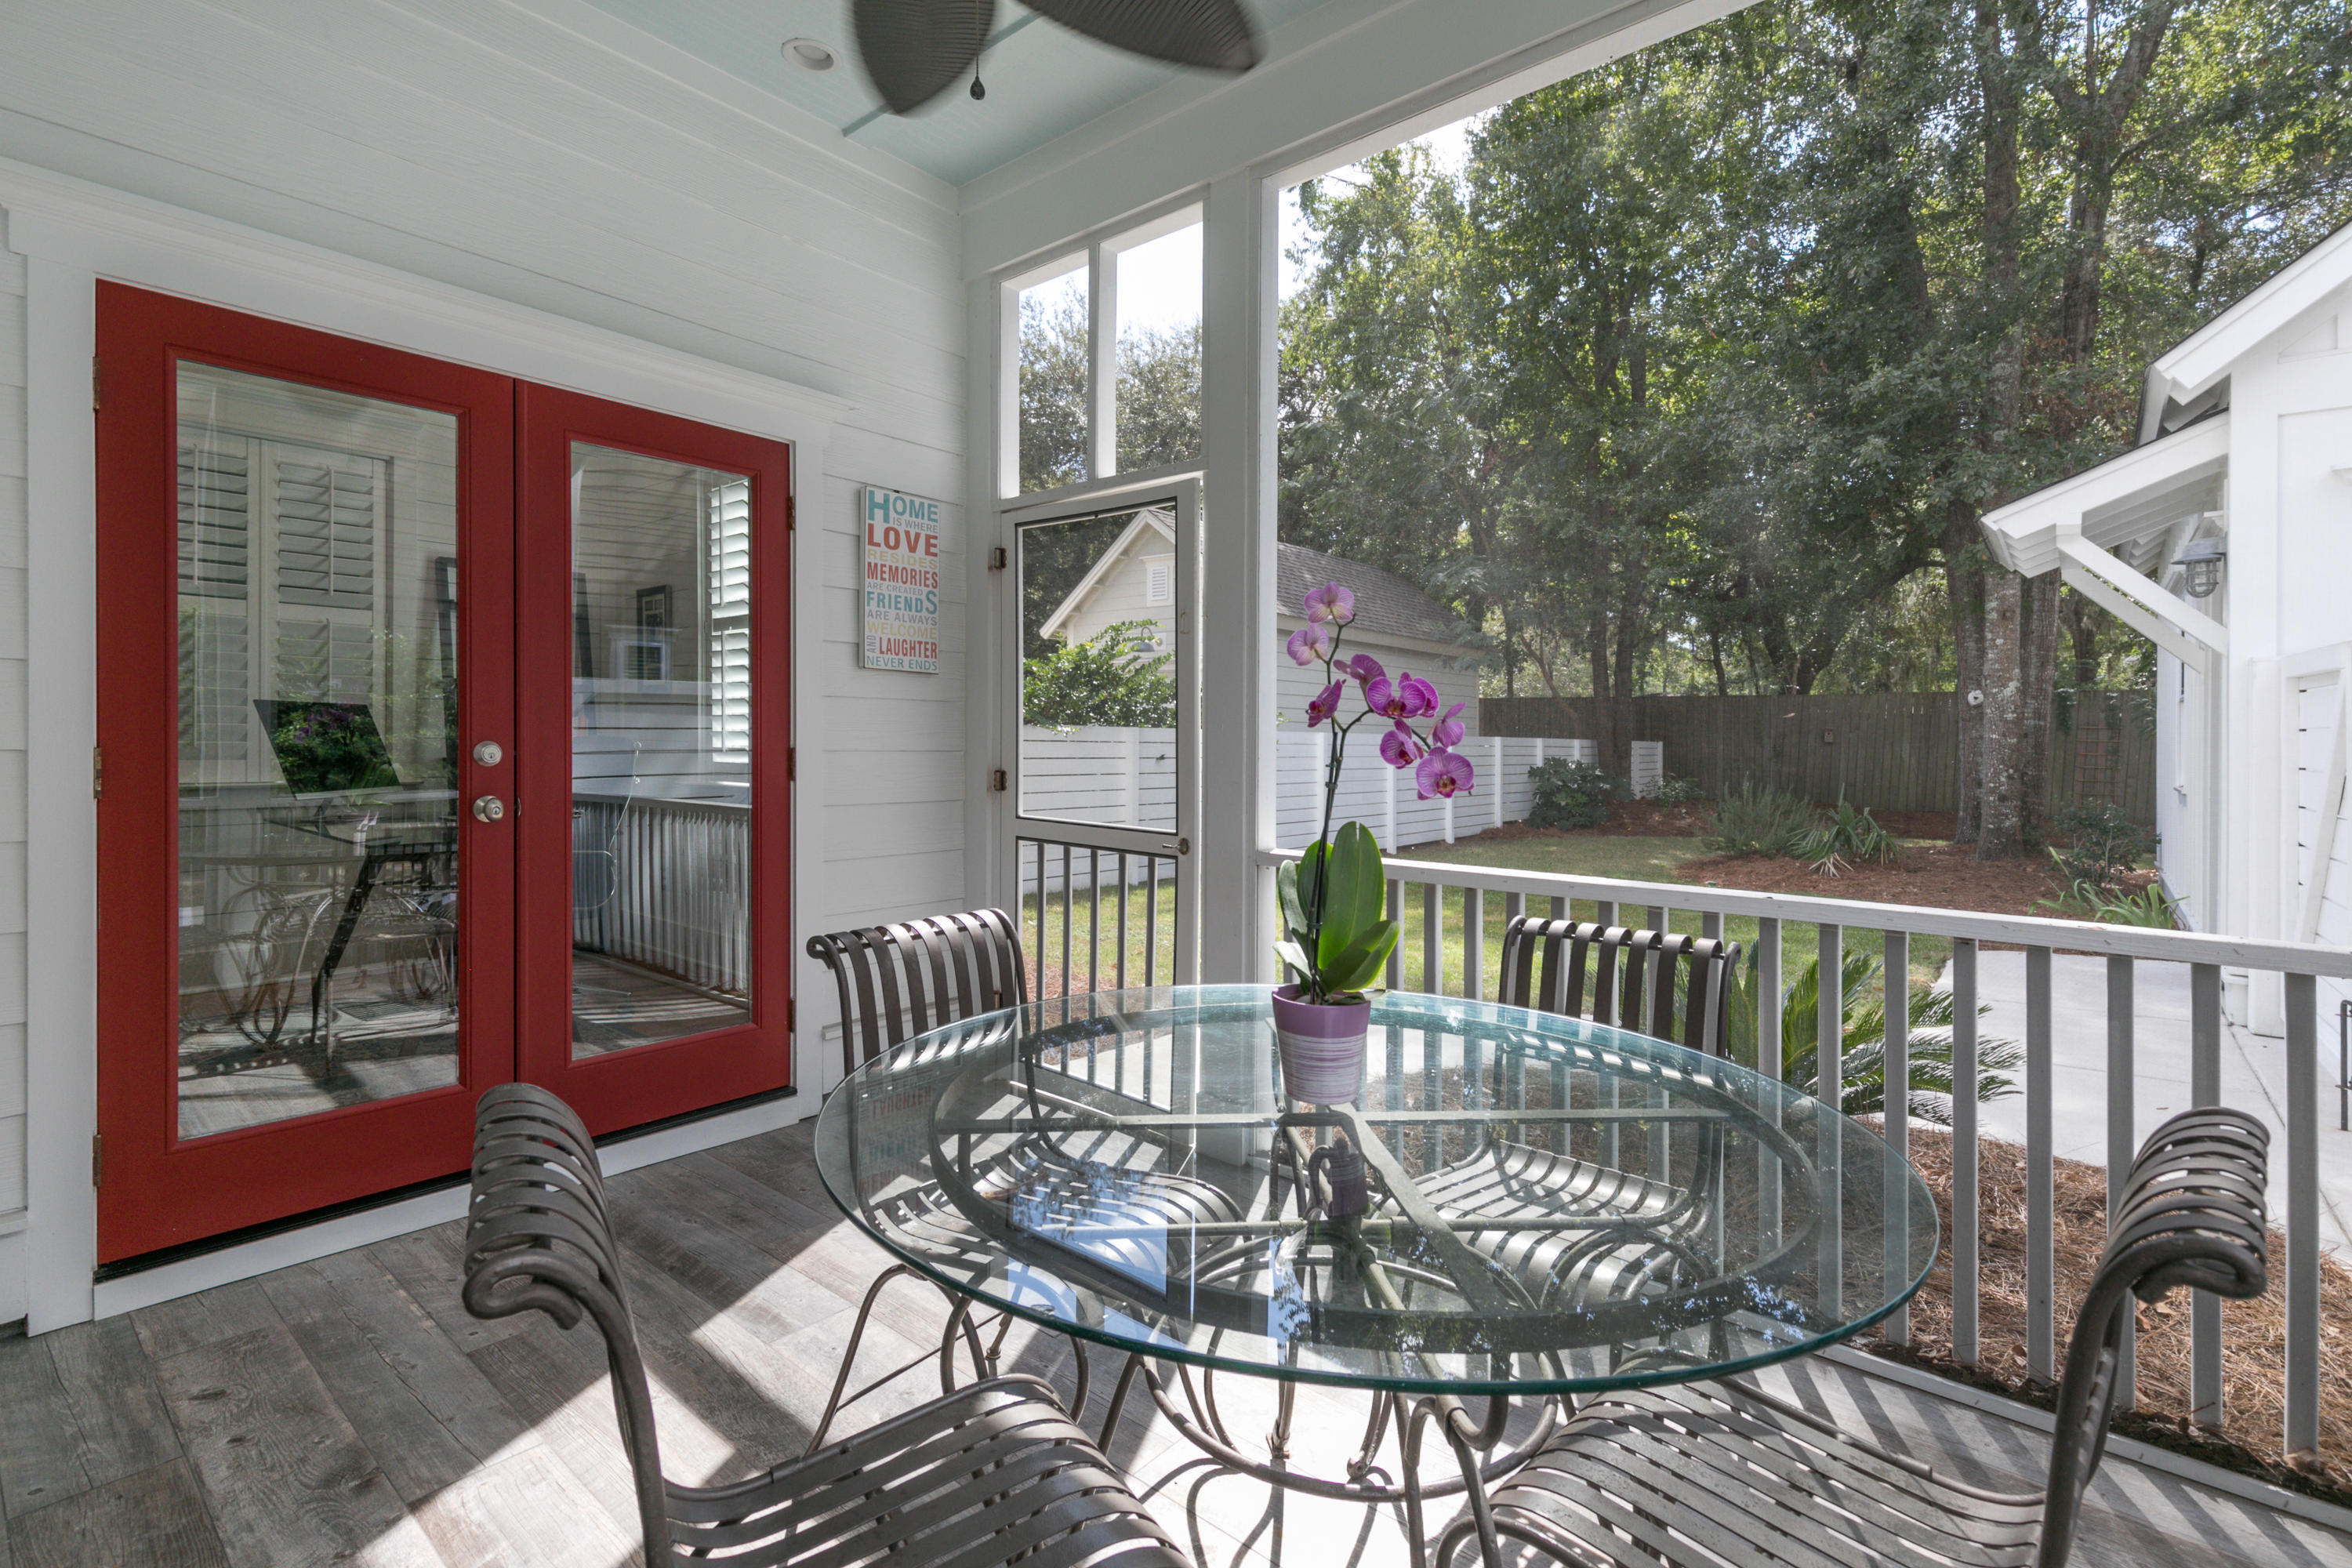 Wexford Park Homes For Sale - 1133 Wexford, Mount Pleasant, SC - 4